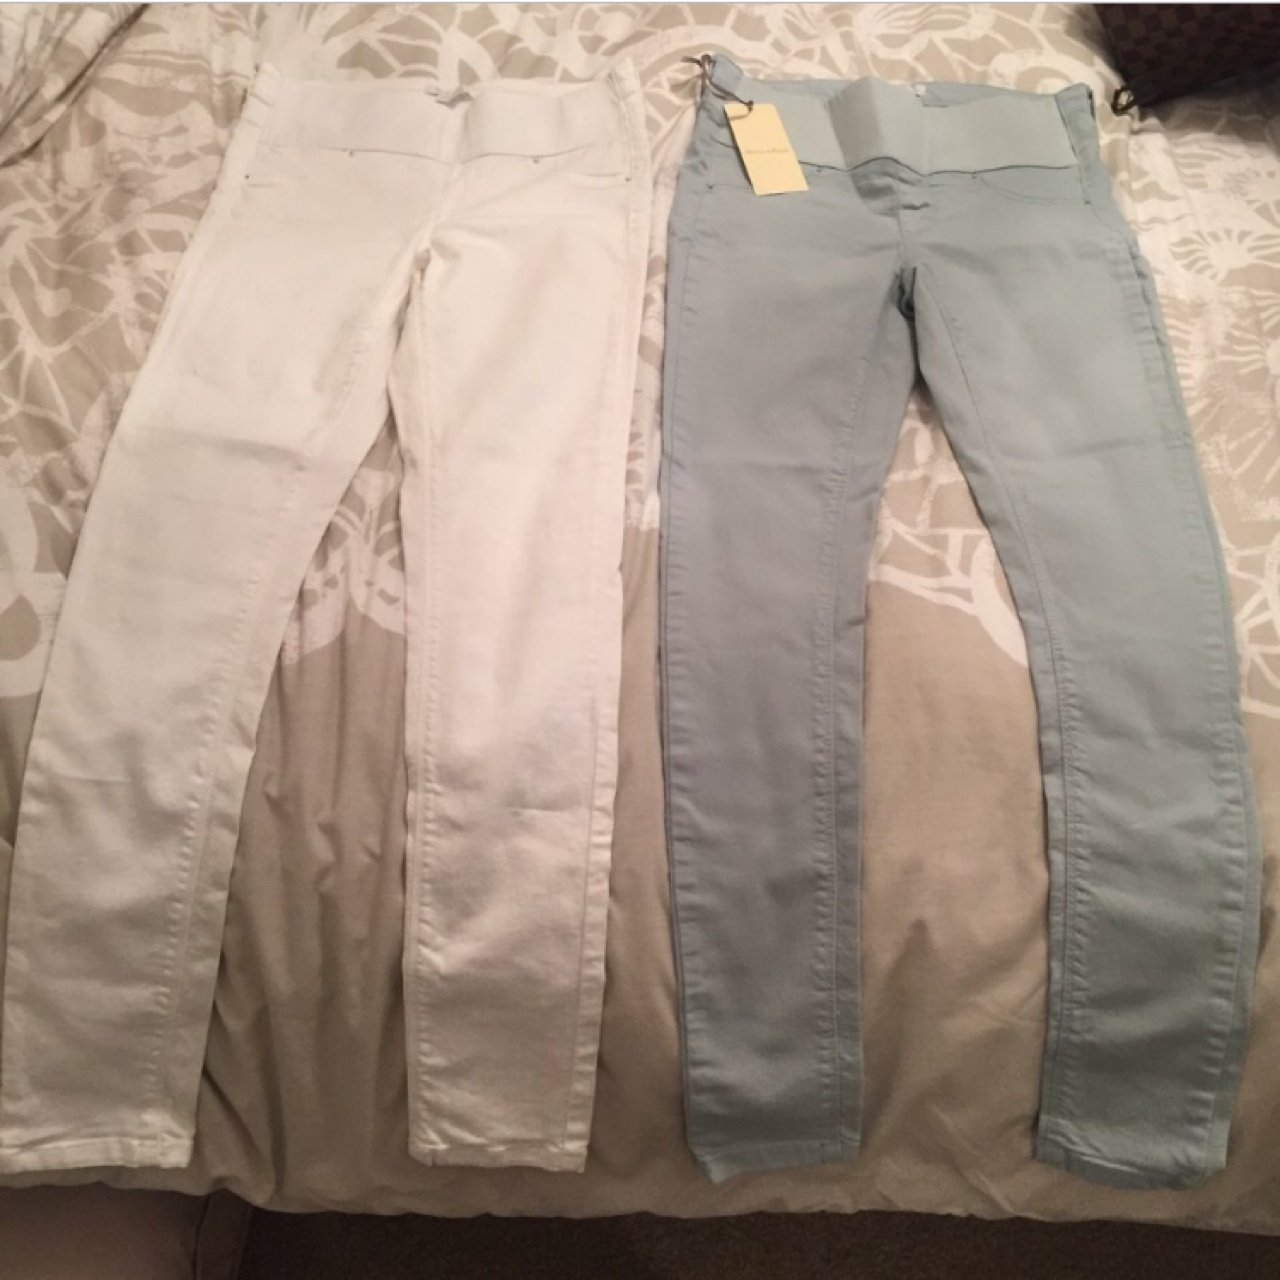 d3723e580df53b 2 pairs of mamas and papas maternity under bump jeans. Been - Depop